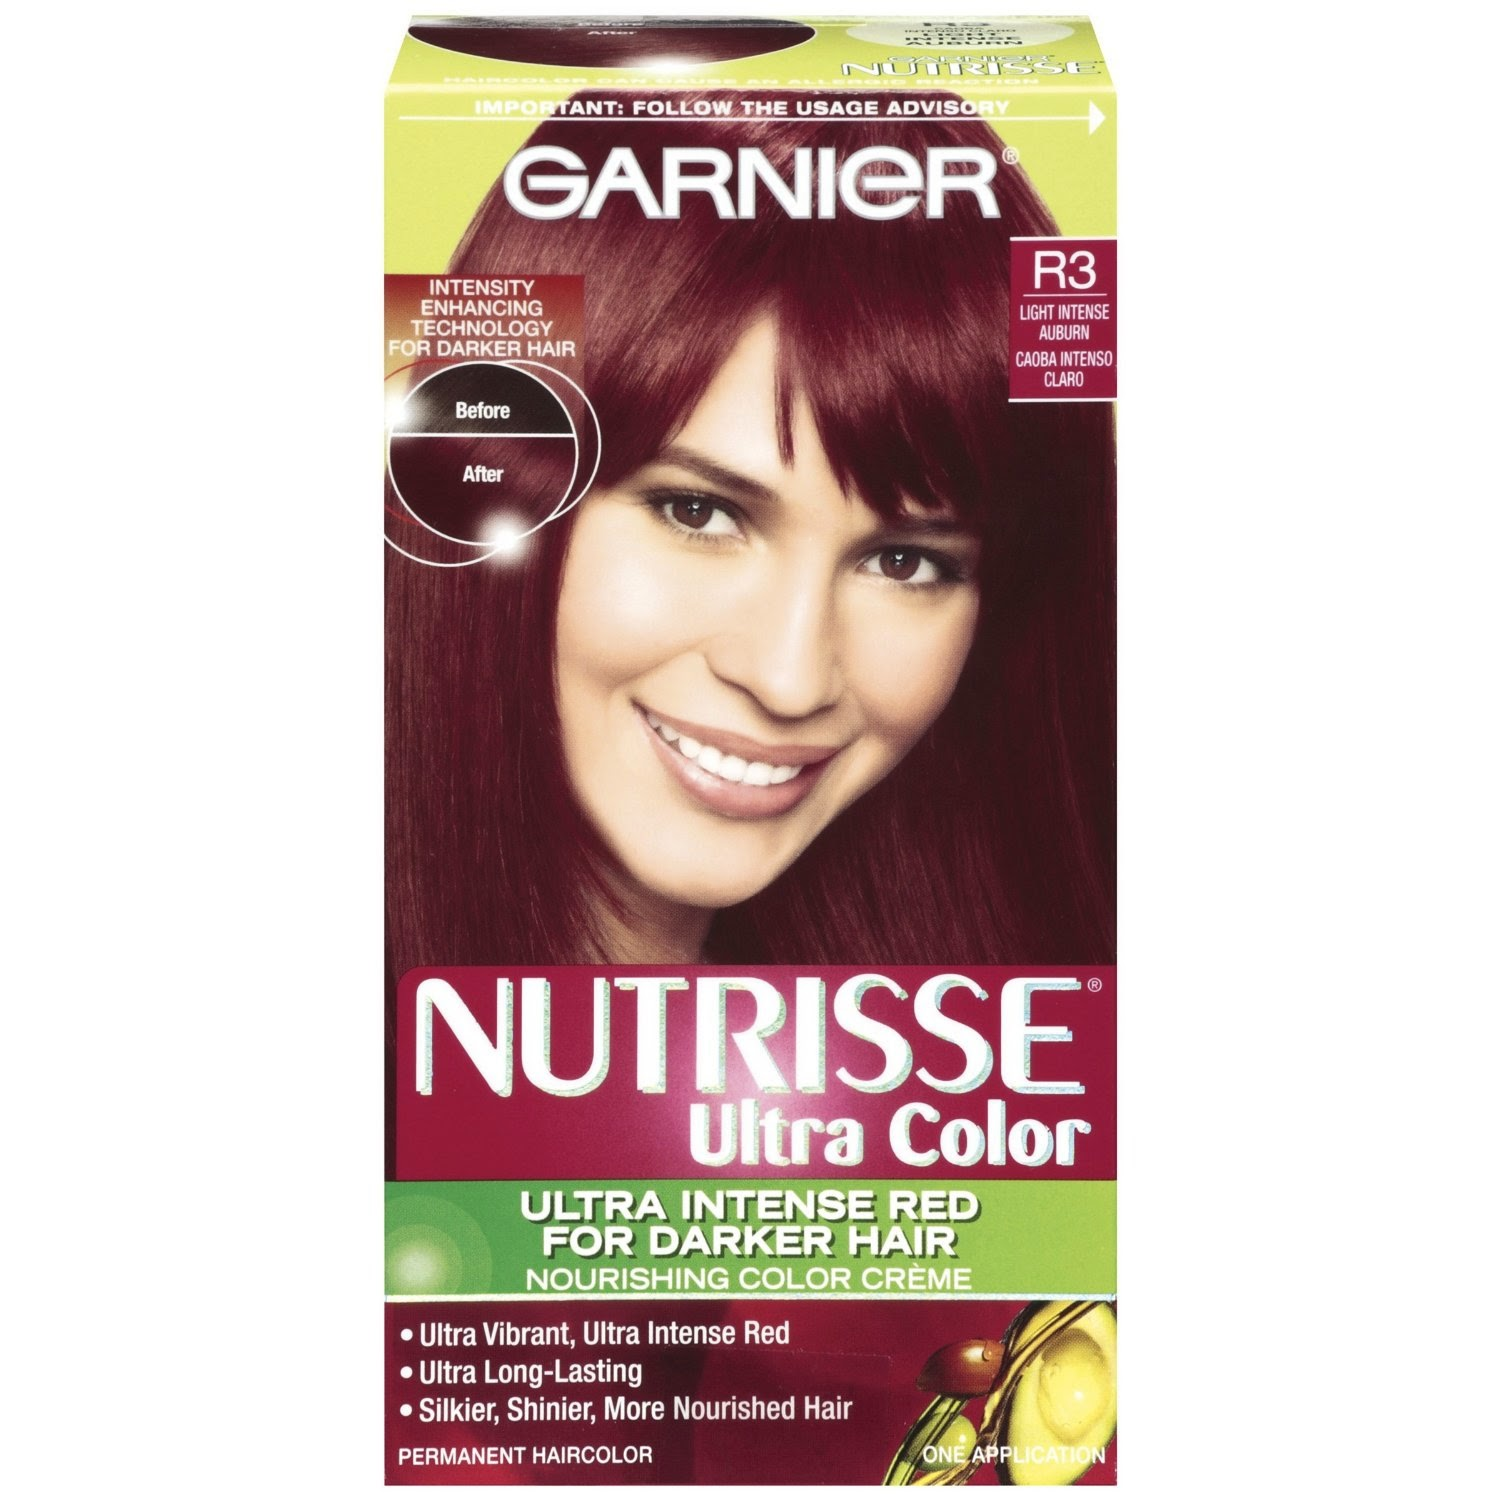 burgundy hair color 2014: Burgundy hair color (GARNIER) review 1